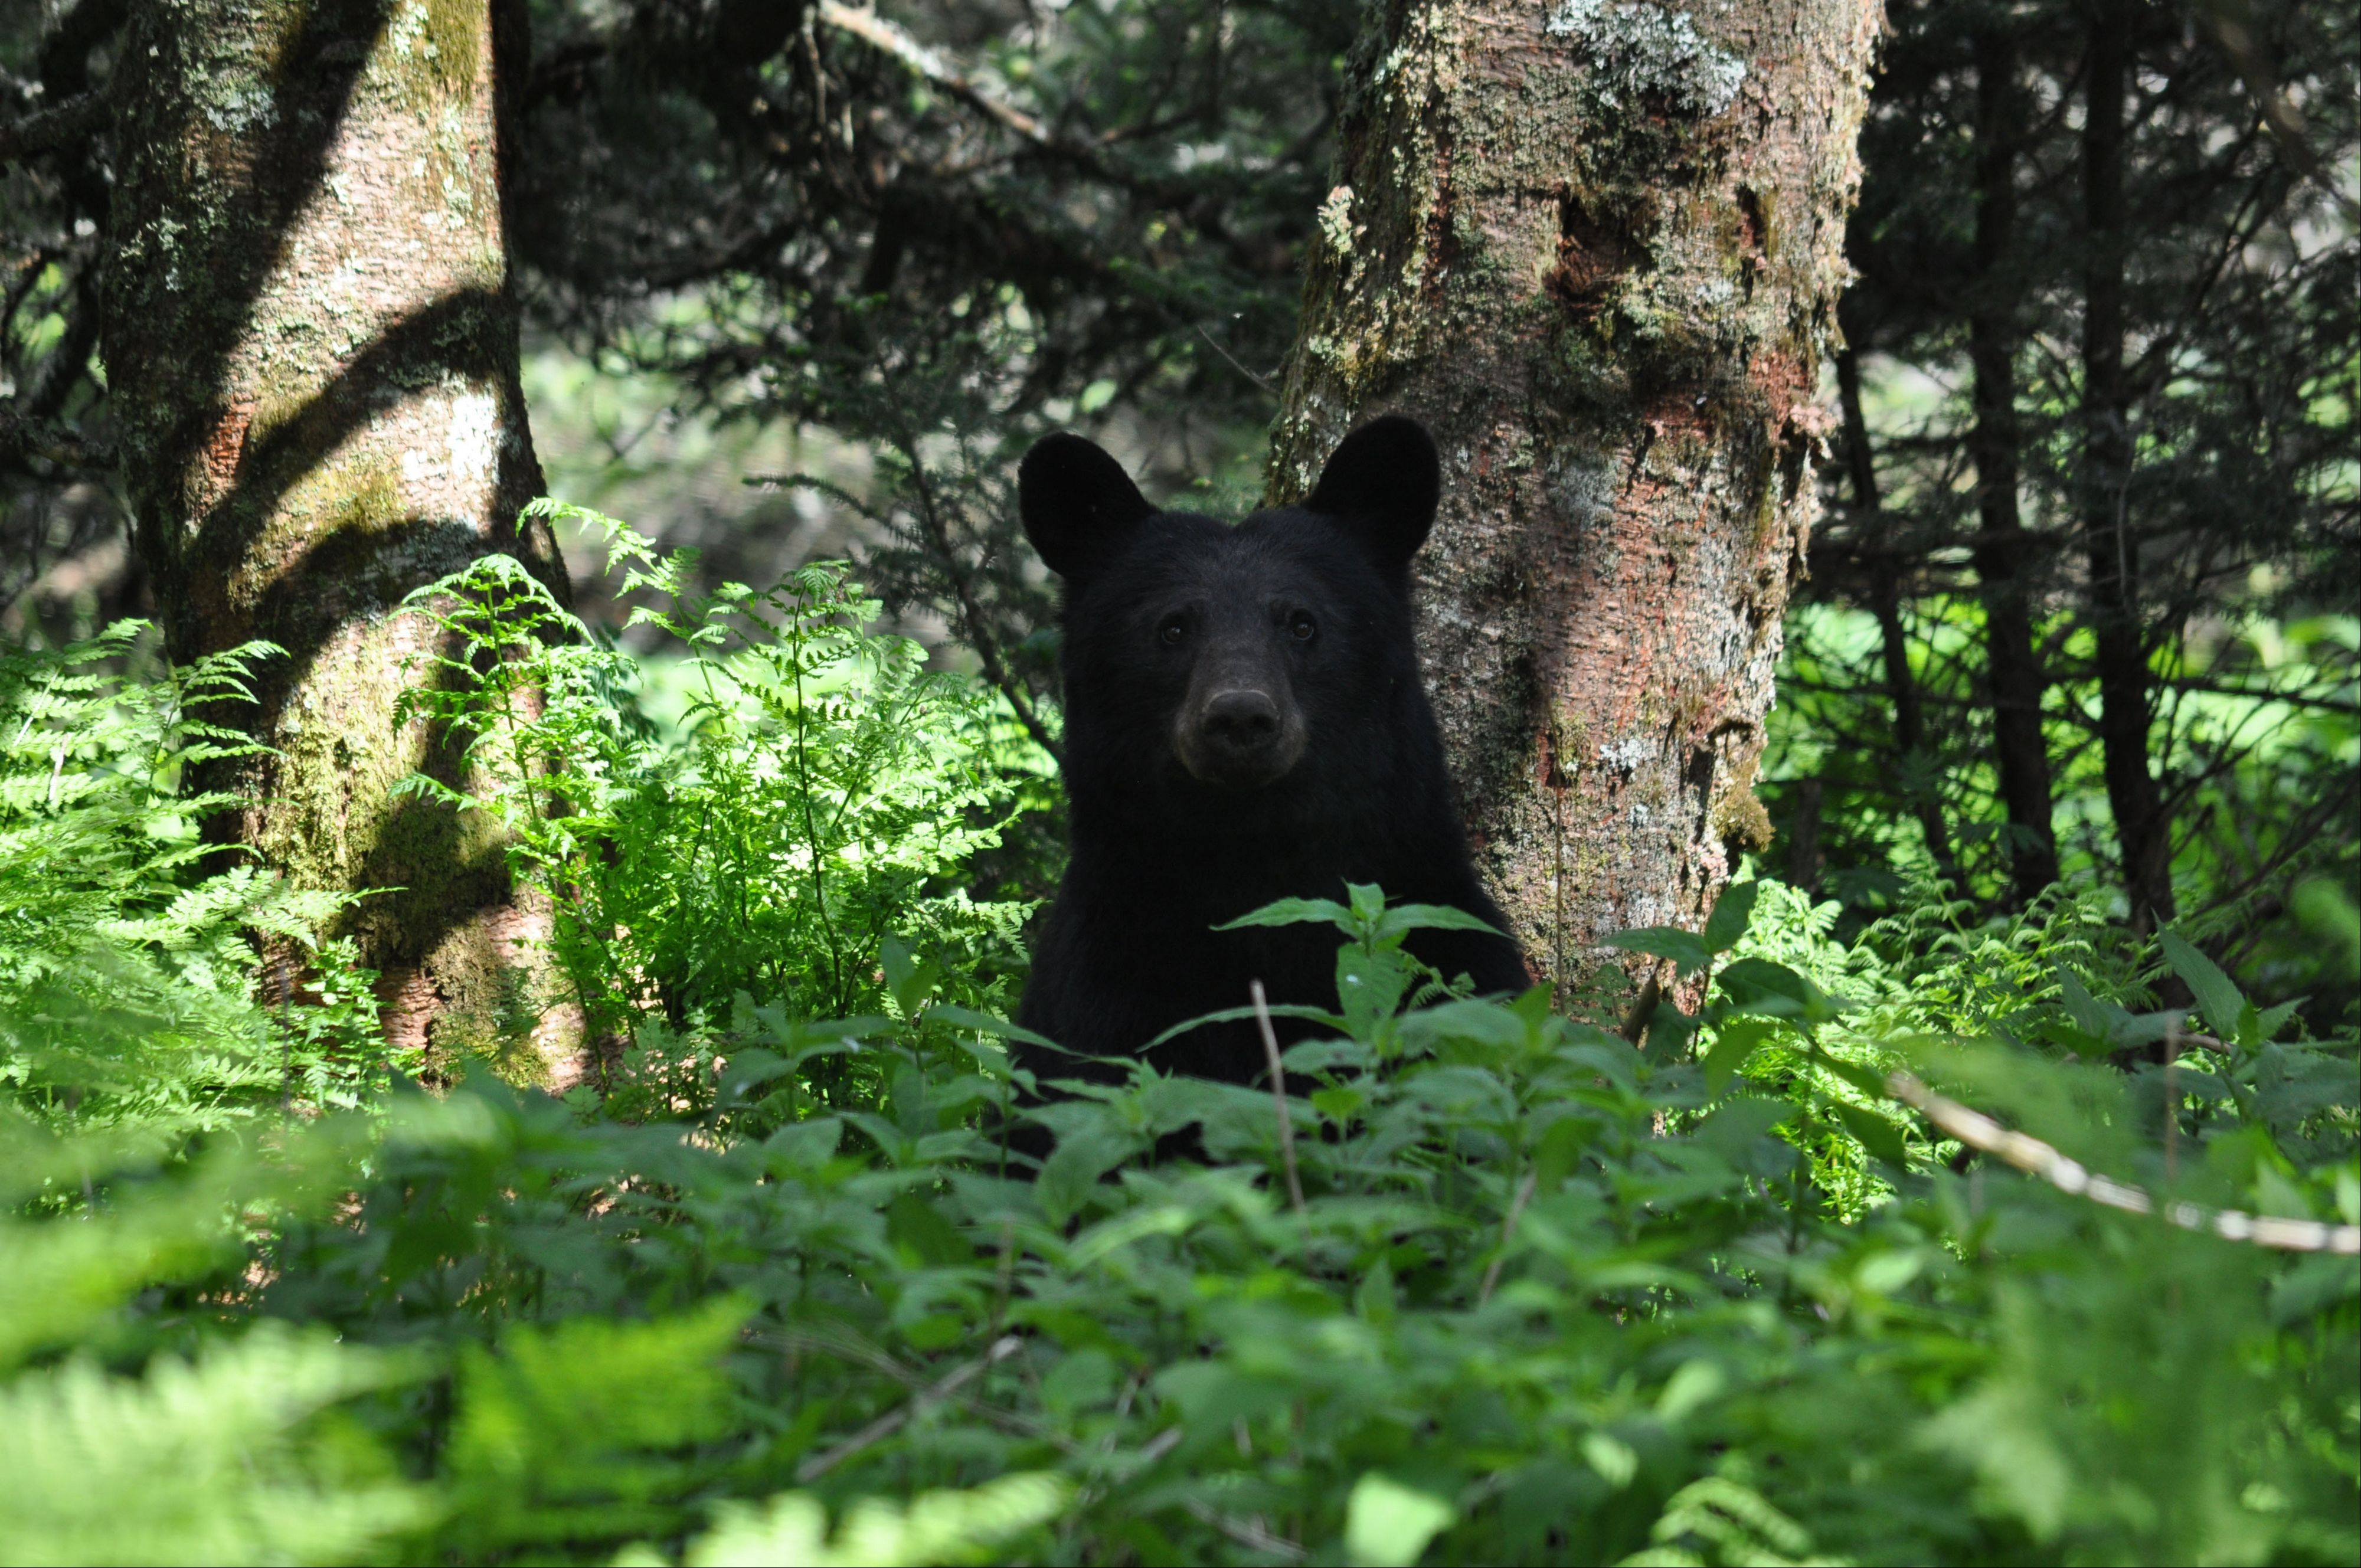 I took this picture June 15th, 2013, in The Great Smokey Mountain National Park while hiking the Appalachian Trail on Clingman�s Dome. As you may be able to tell from the bear�s expression I believe we were both surprised to see each other.